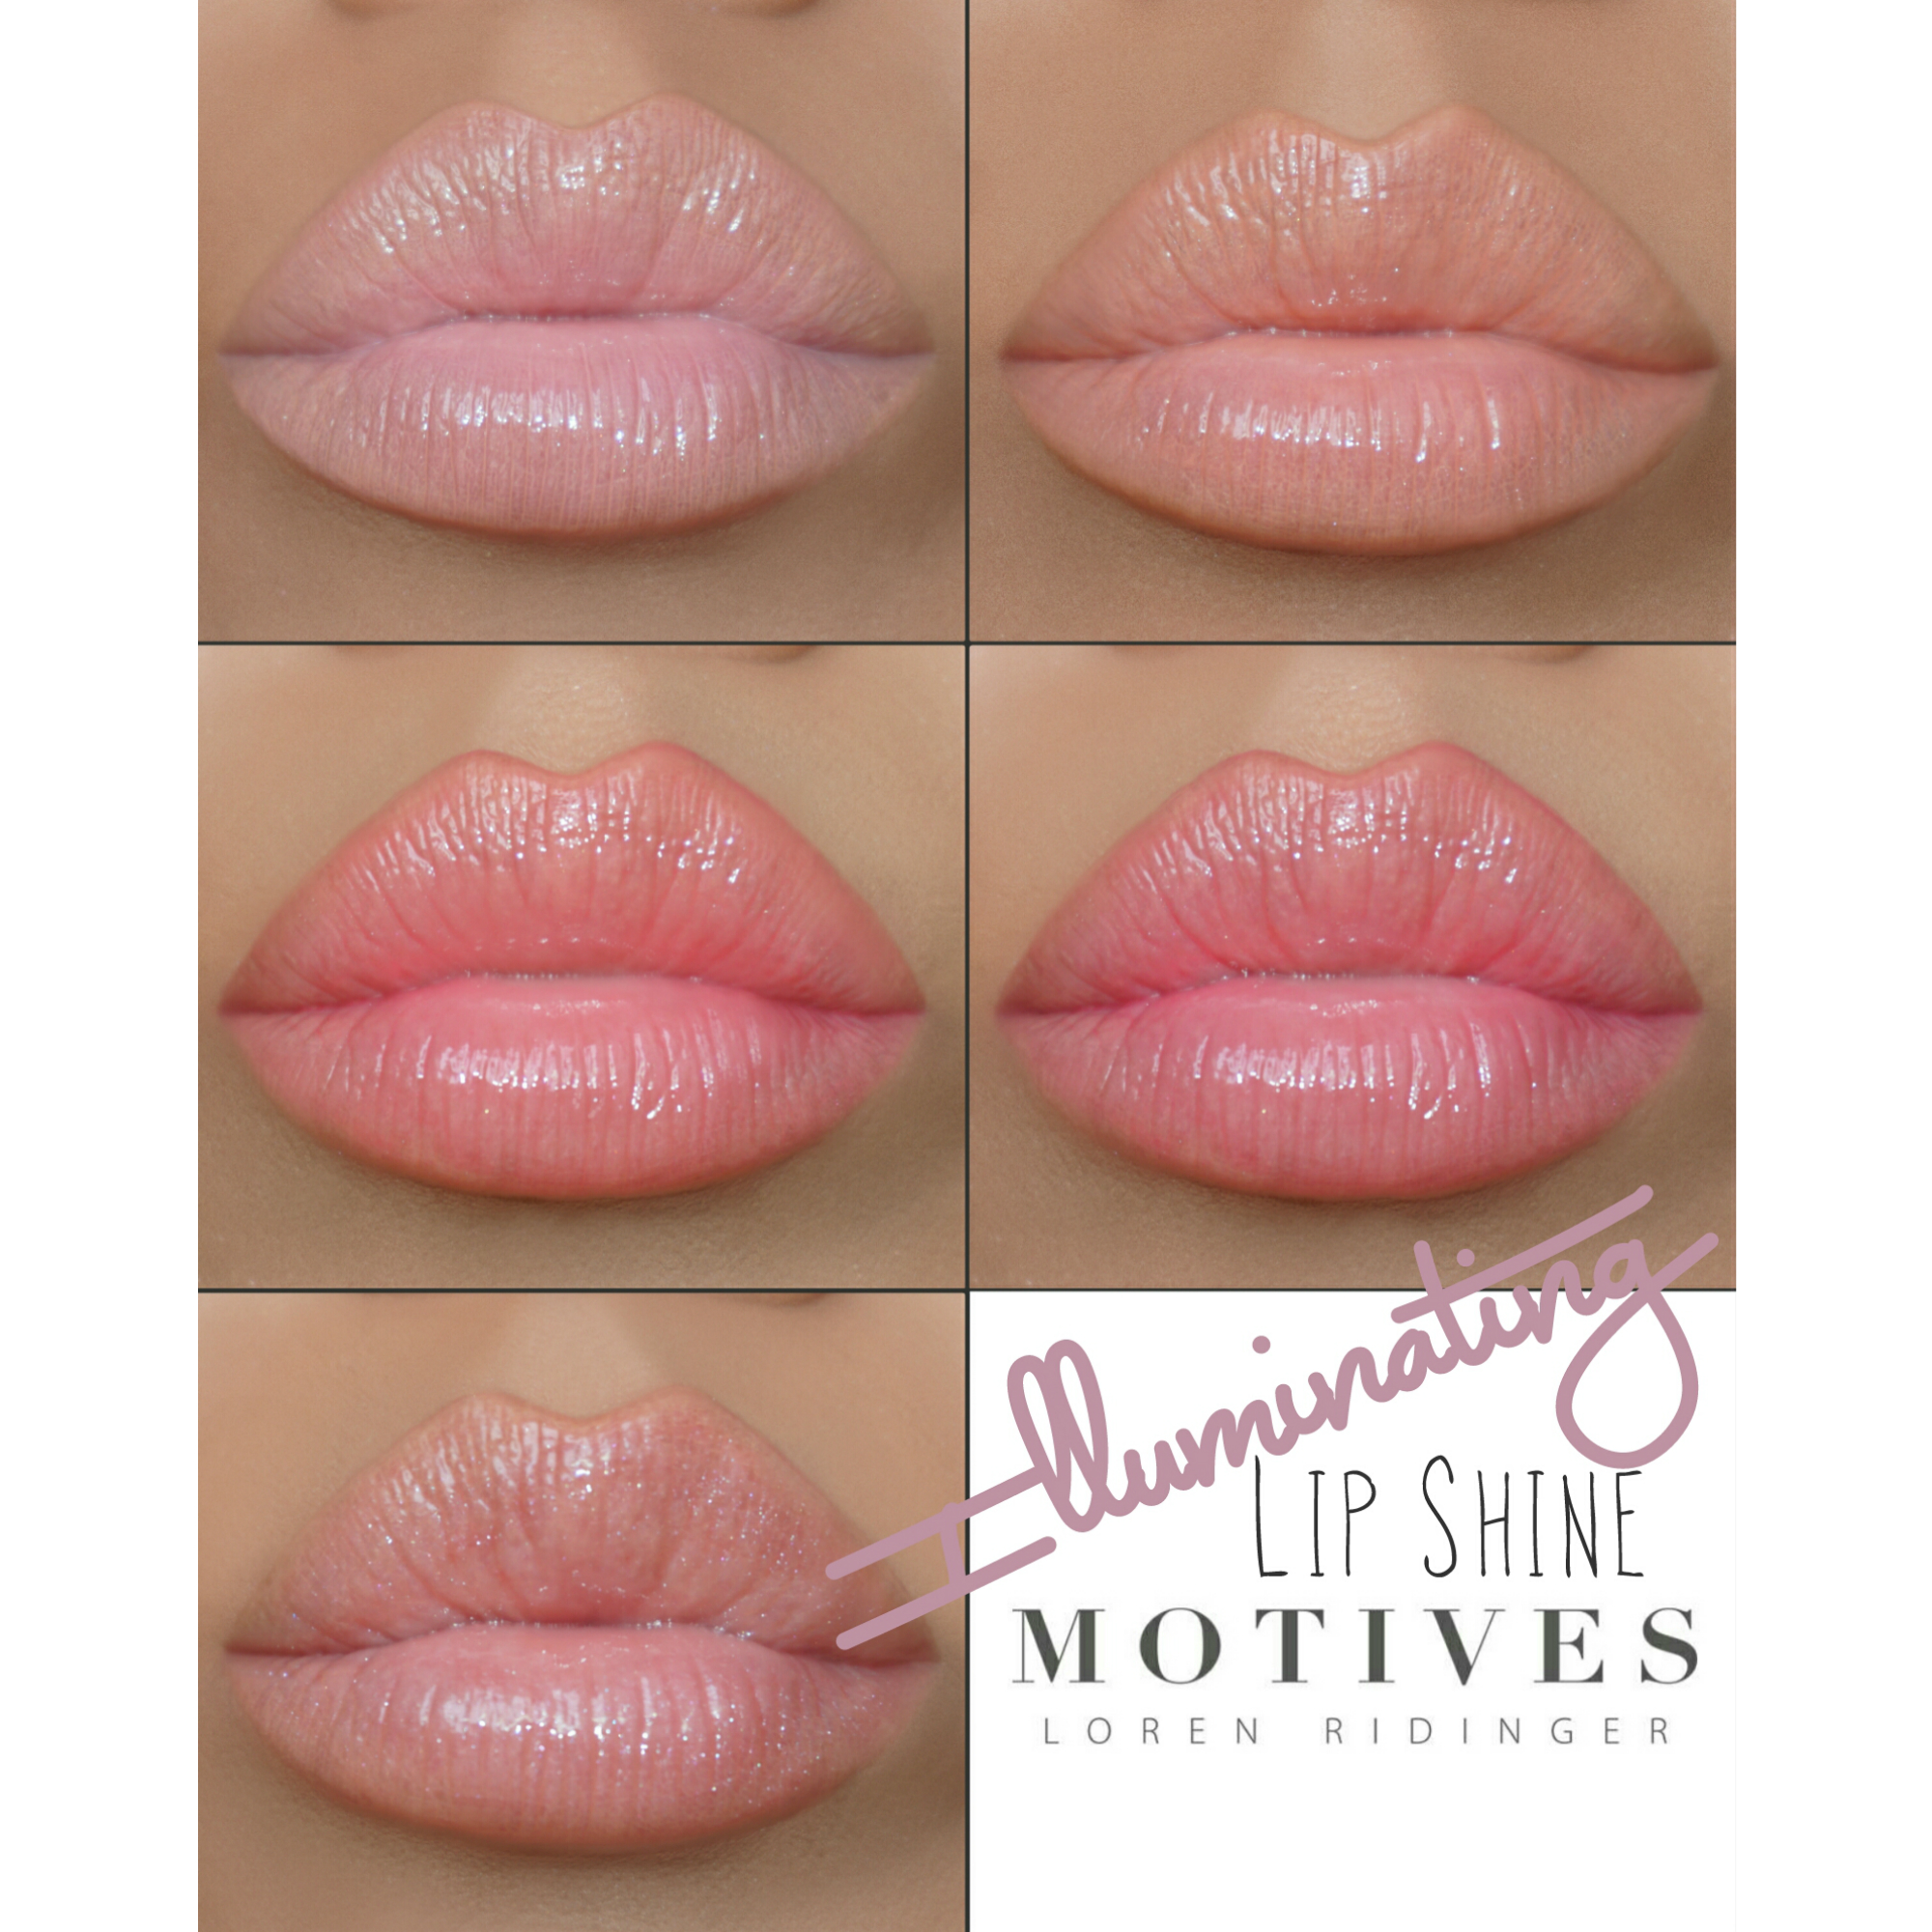 Motives Illuminating Lip Shines in Nudes and Pinks